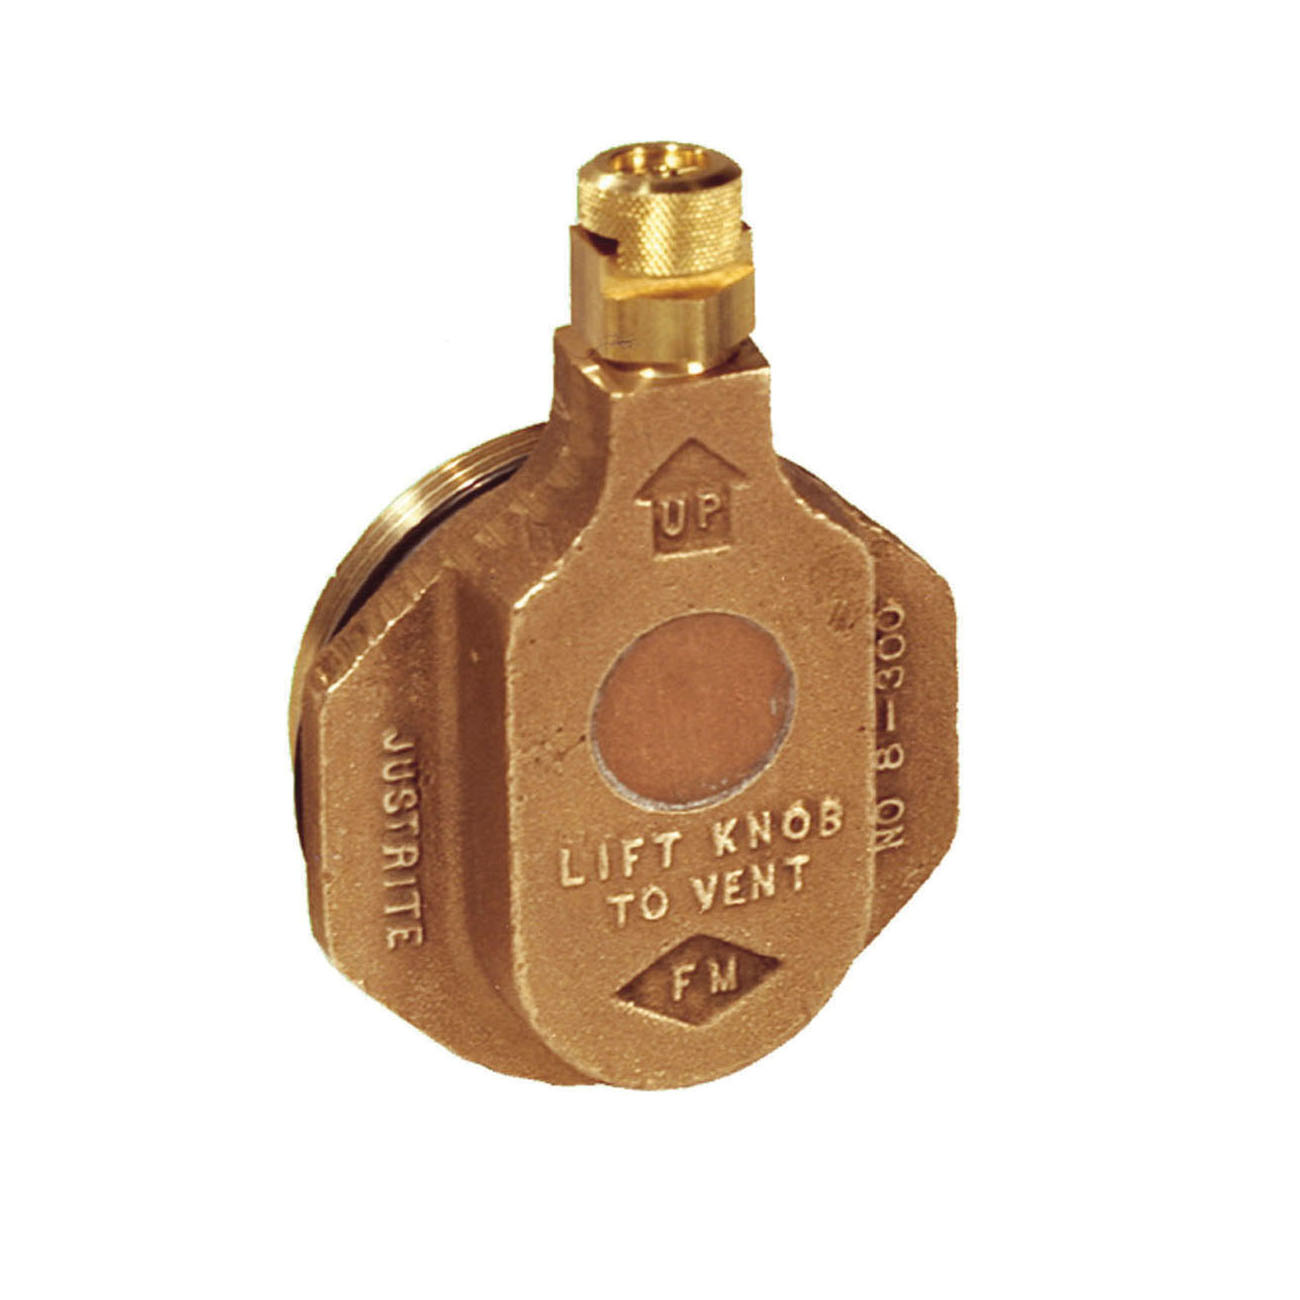 Justrite® 08300 Horizontal Drum Vent, 2 in NPT/NPS Bung, For Use With 205 L Petroleum Based Solvent Drums, Brass, Brass